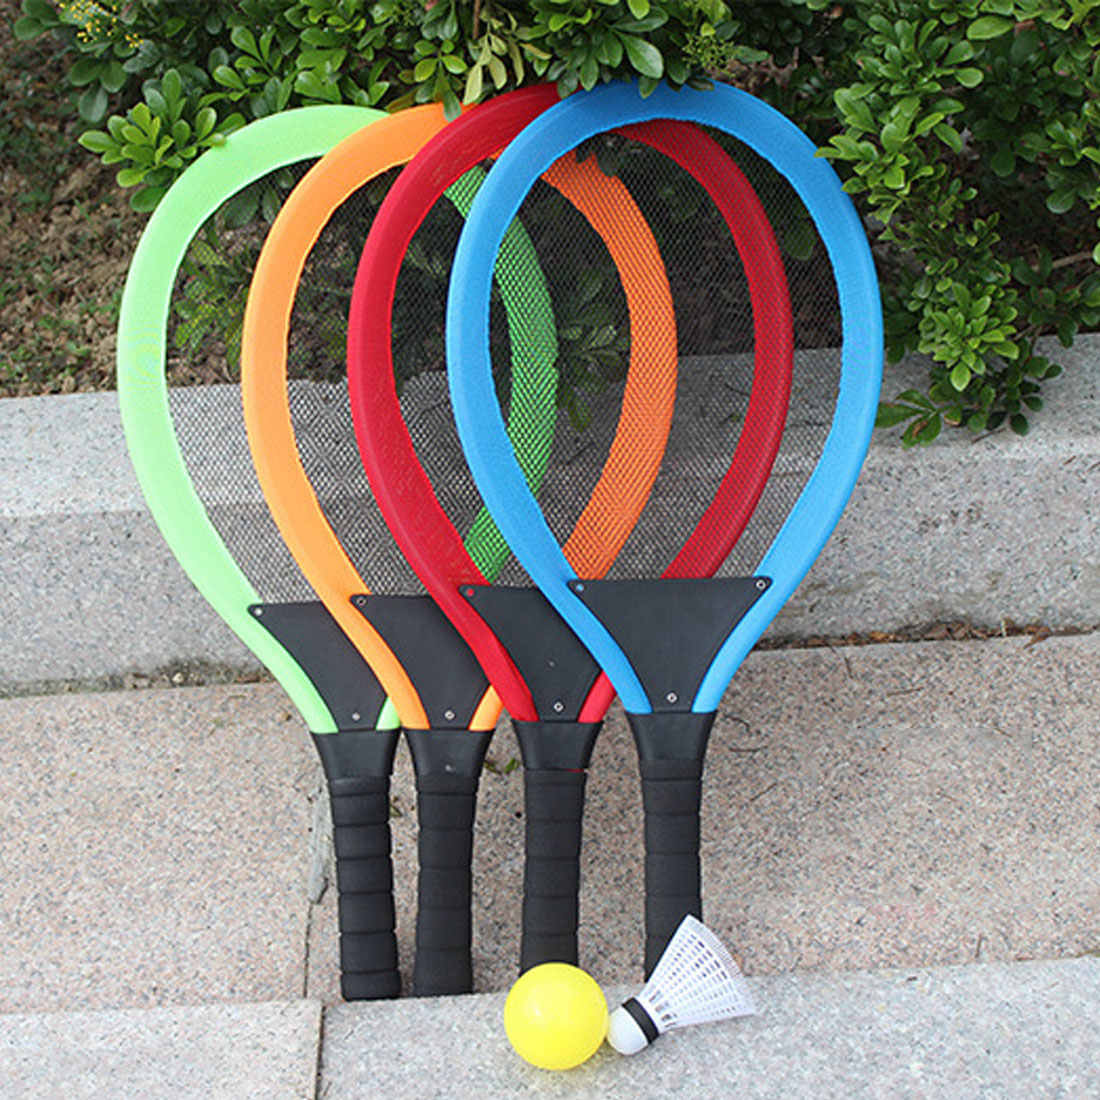 New Arrival 1 Pair Badminton Tennis Racket Set Outdoor Sports Parent-child Sport Educational Toys Baby Sport